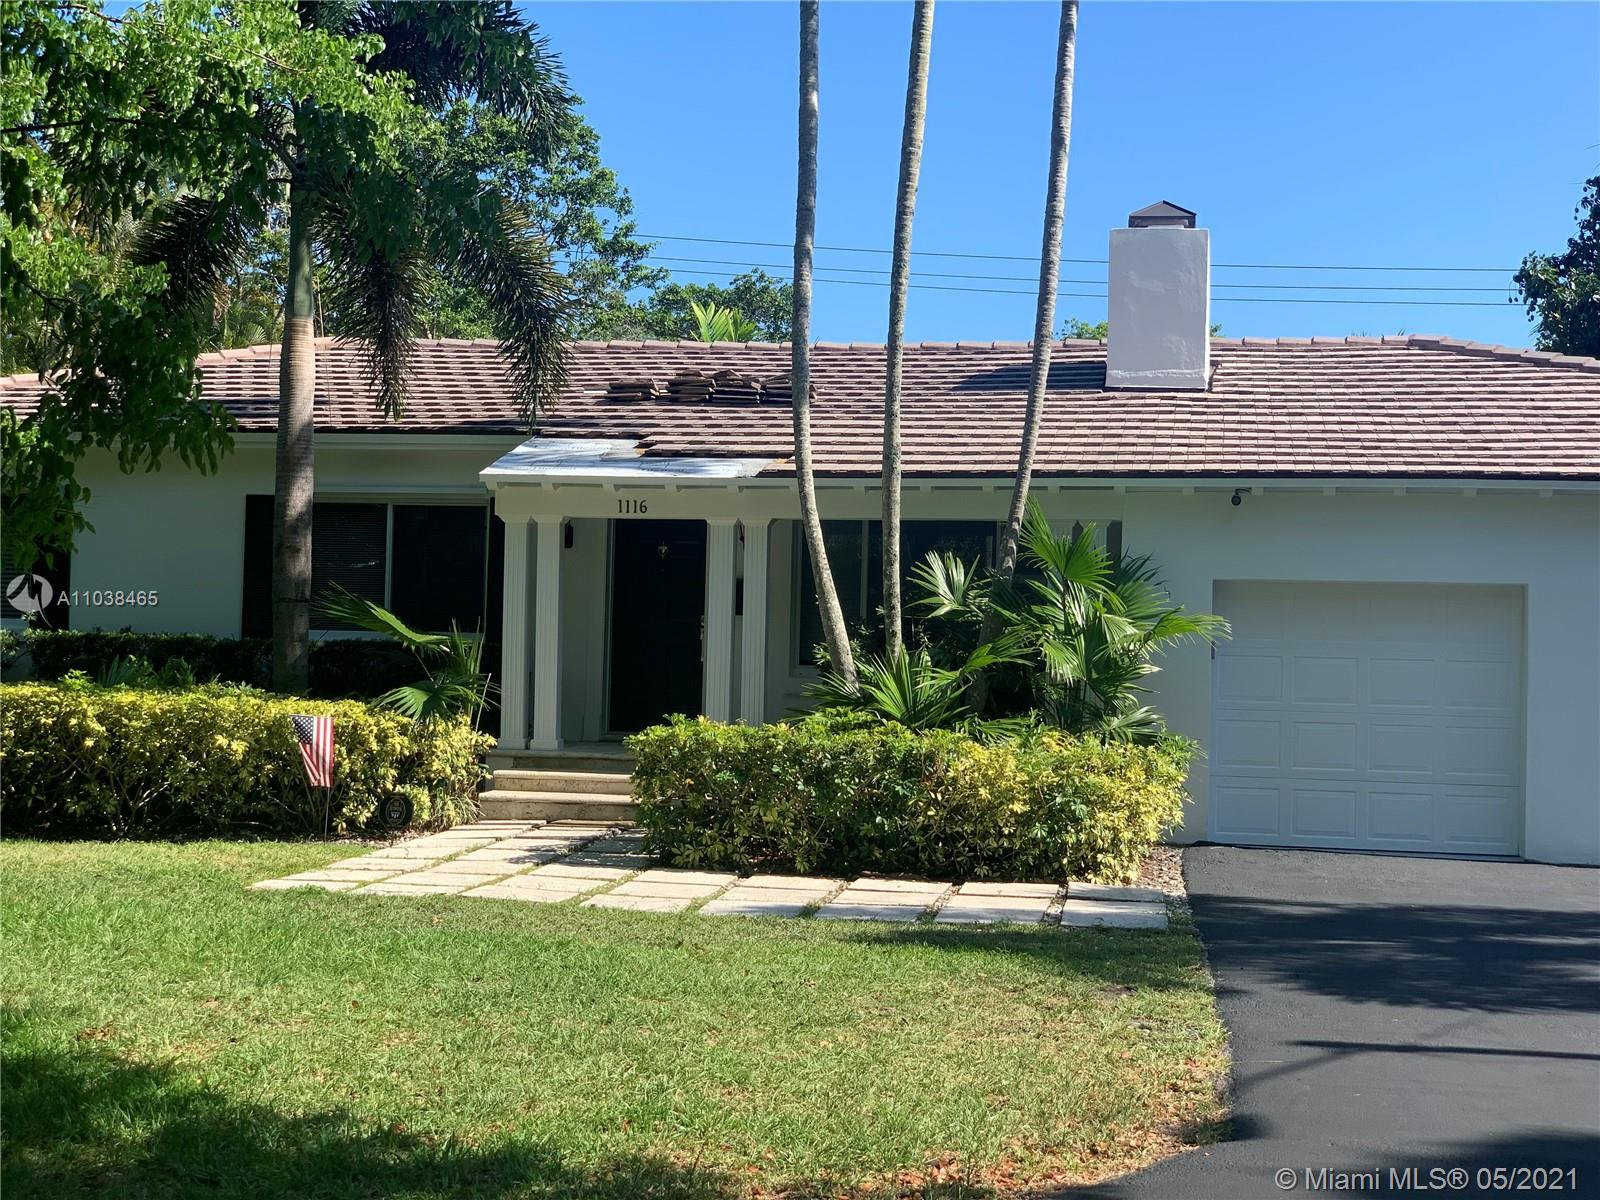 South Miami - 1116 Manati Ave, Coral Gables, FL 33146